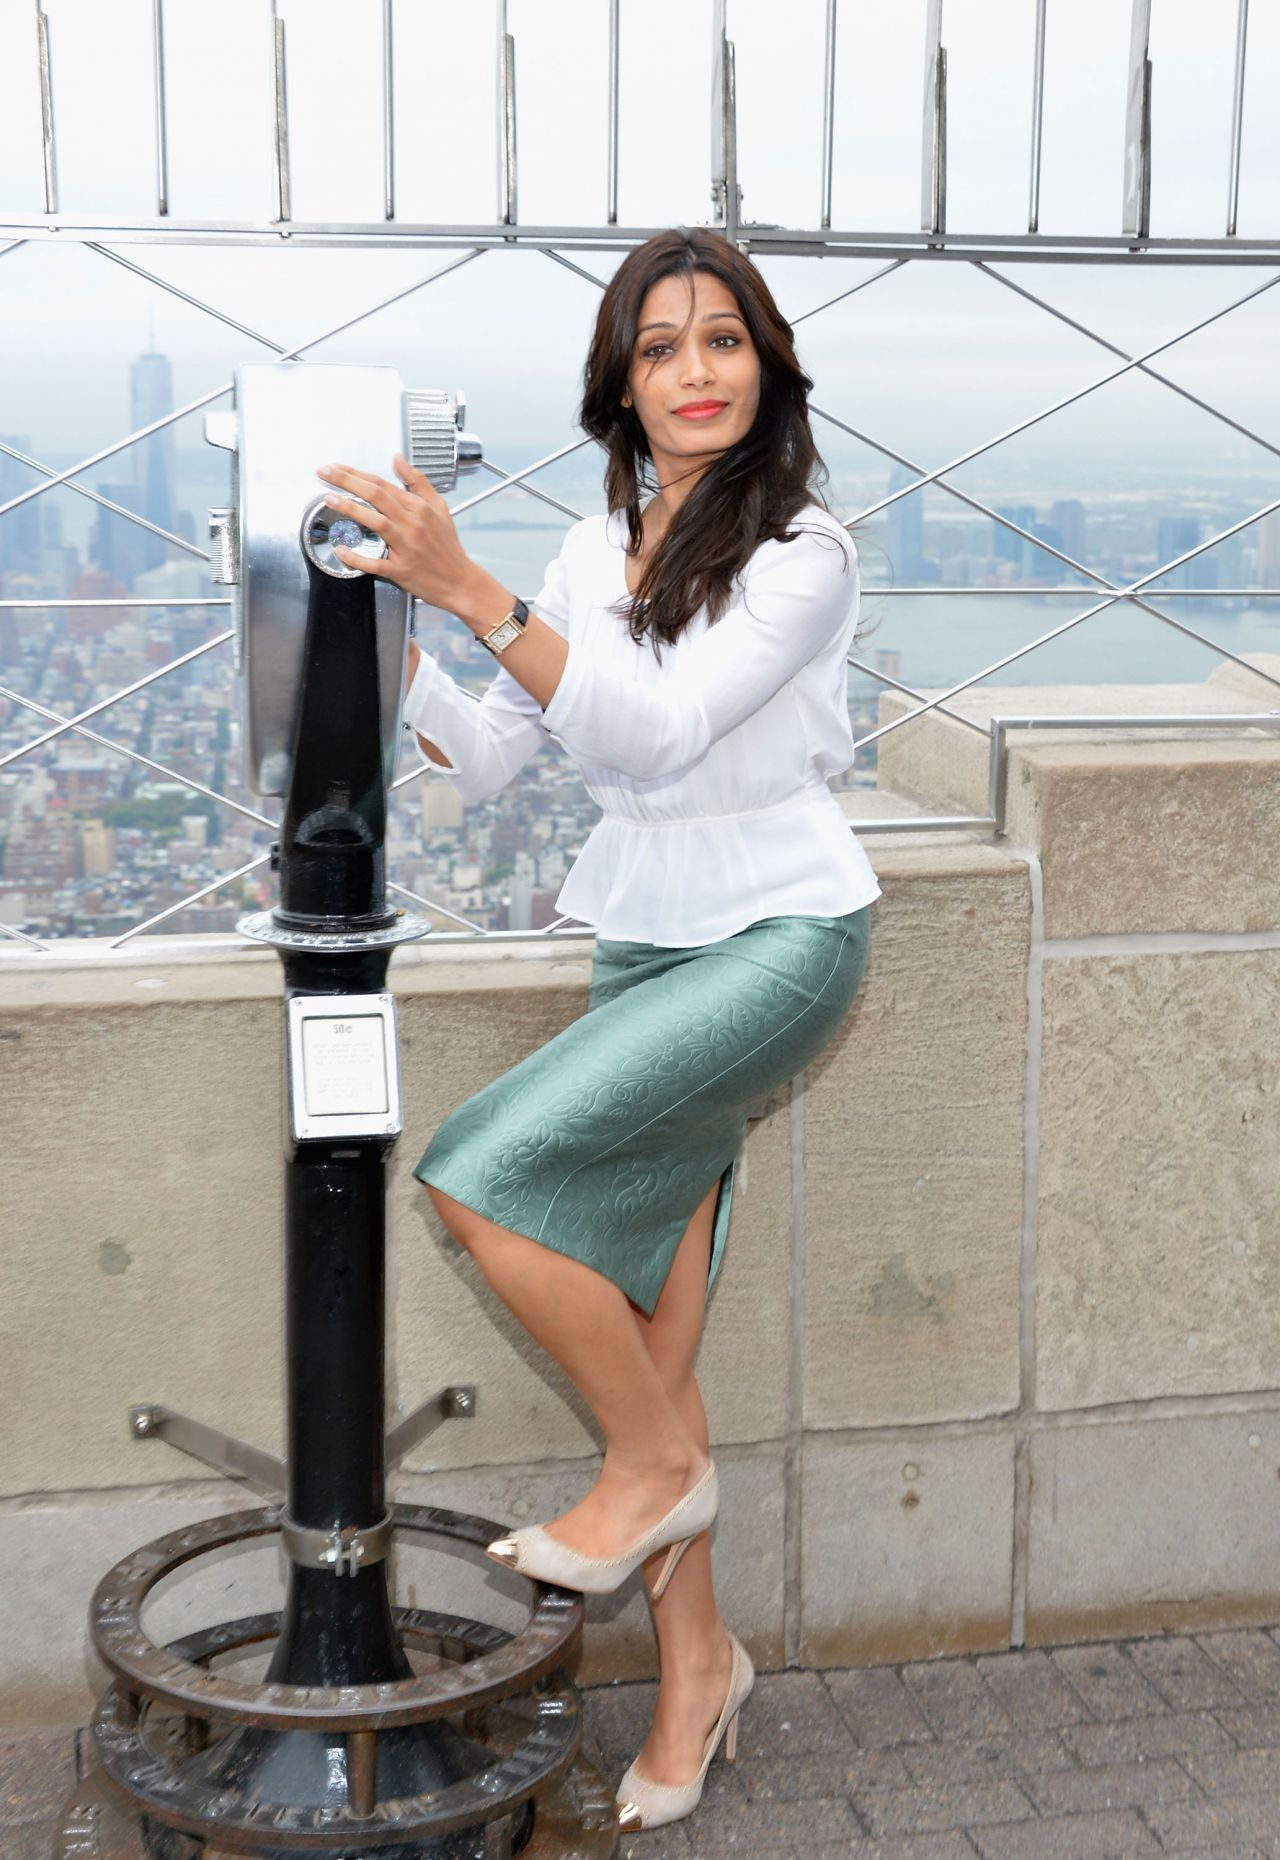 Freida Pinto Plan International Event at The Empire State Building in New York City